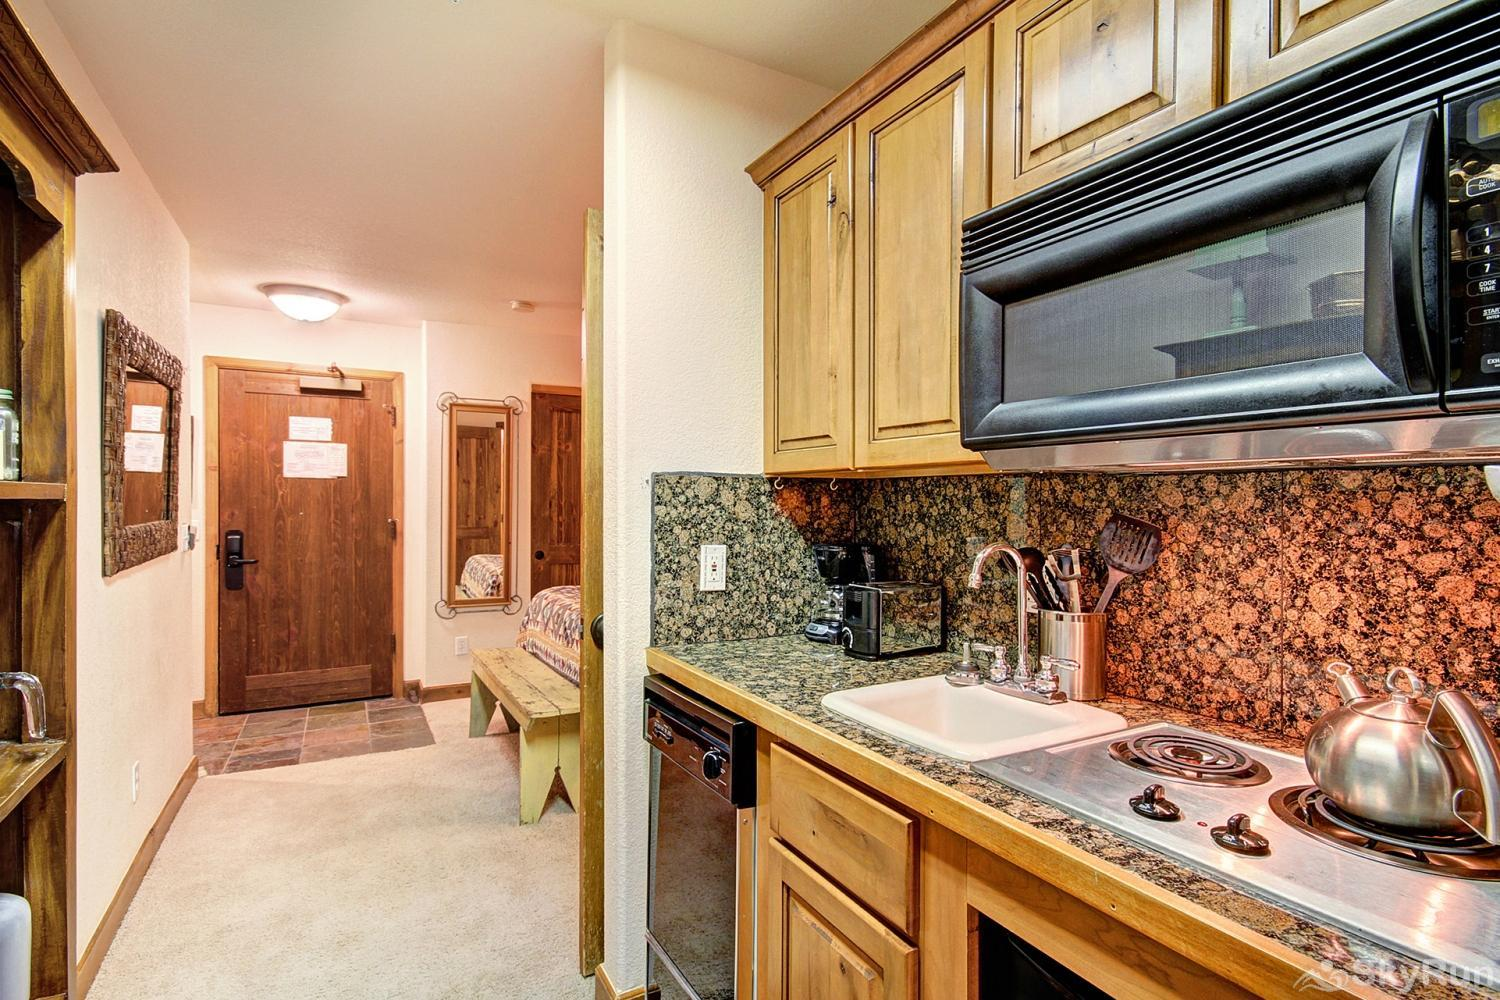 Riverbend 111 Kitchenette separates sleeping and living areas to provide spacious layout